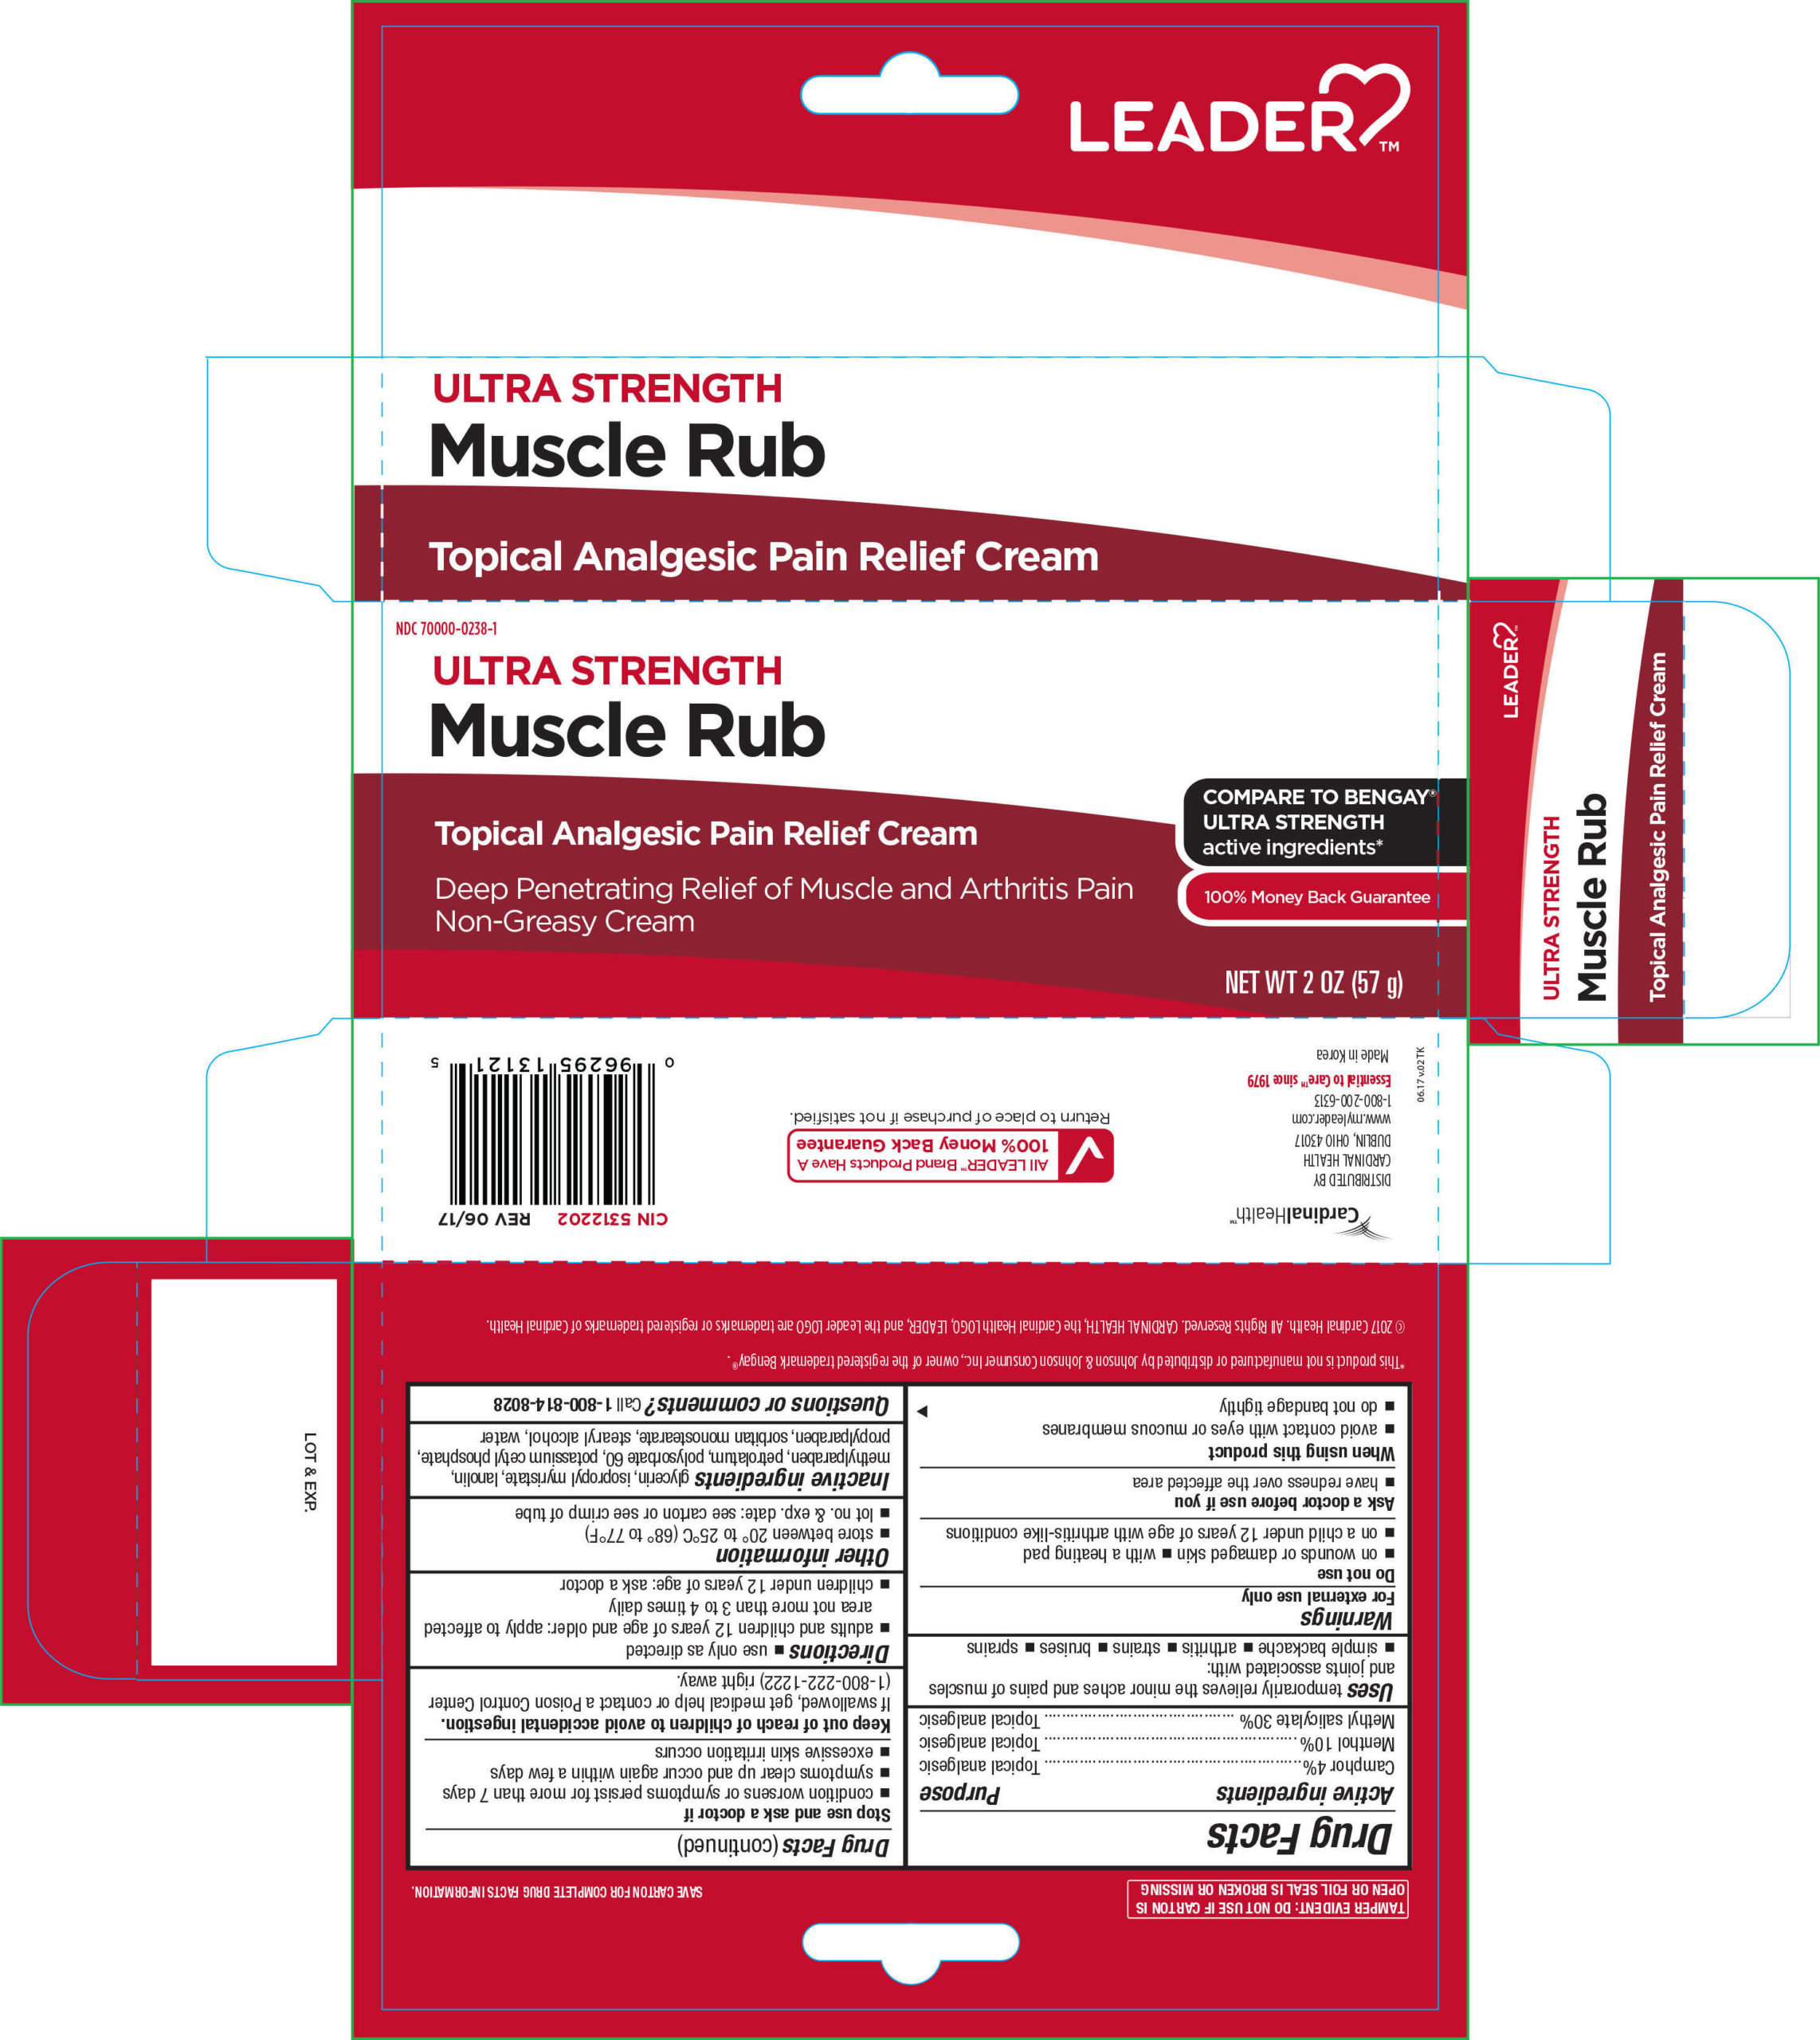 Camphor, Menthol, and Methyl Salicylate (Leader Ultra Strength Muscle Rub)